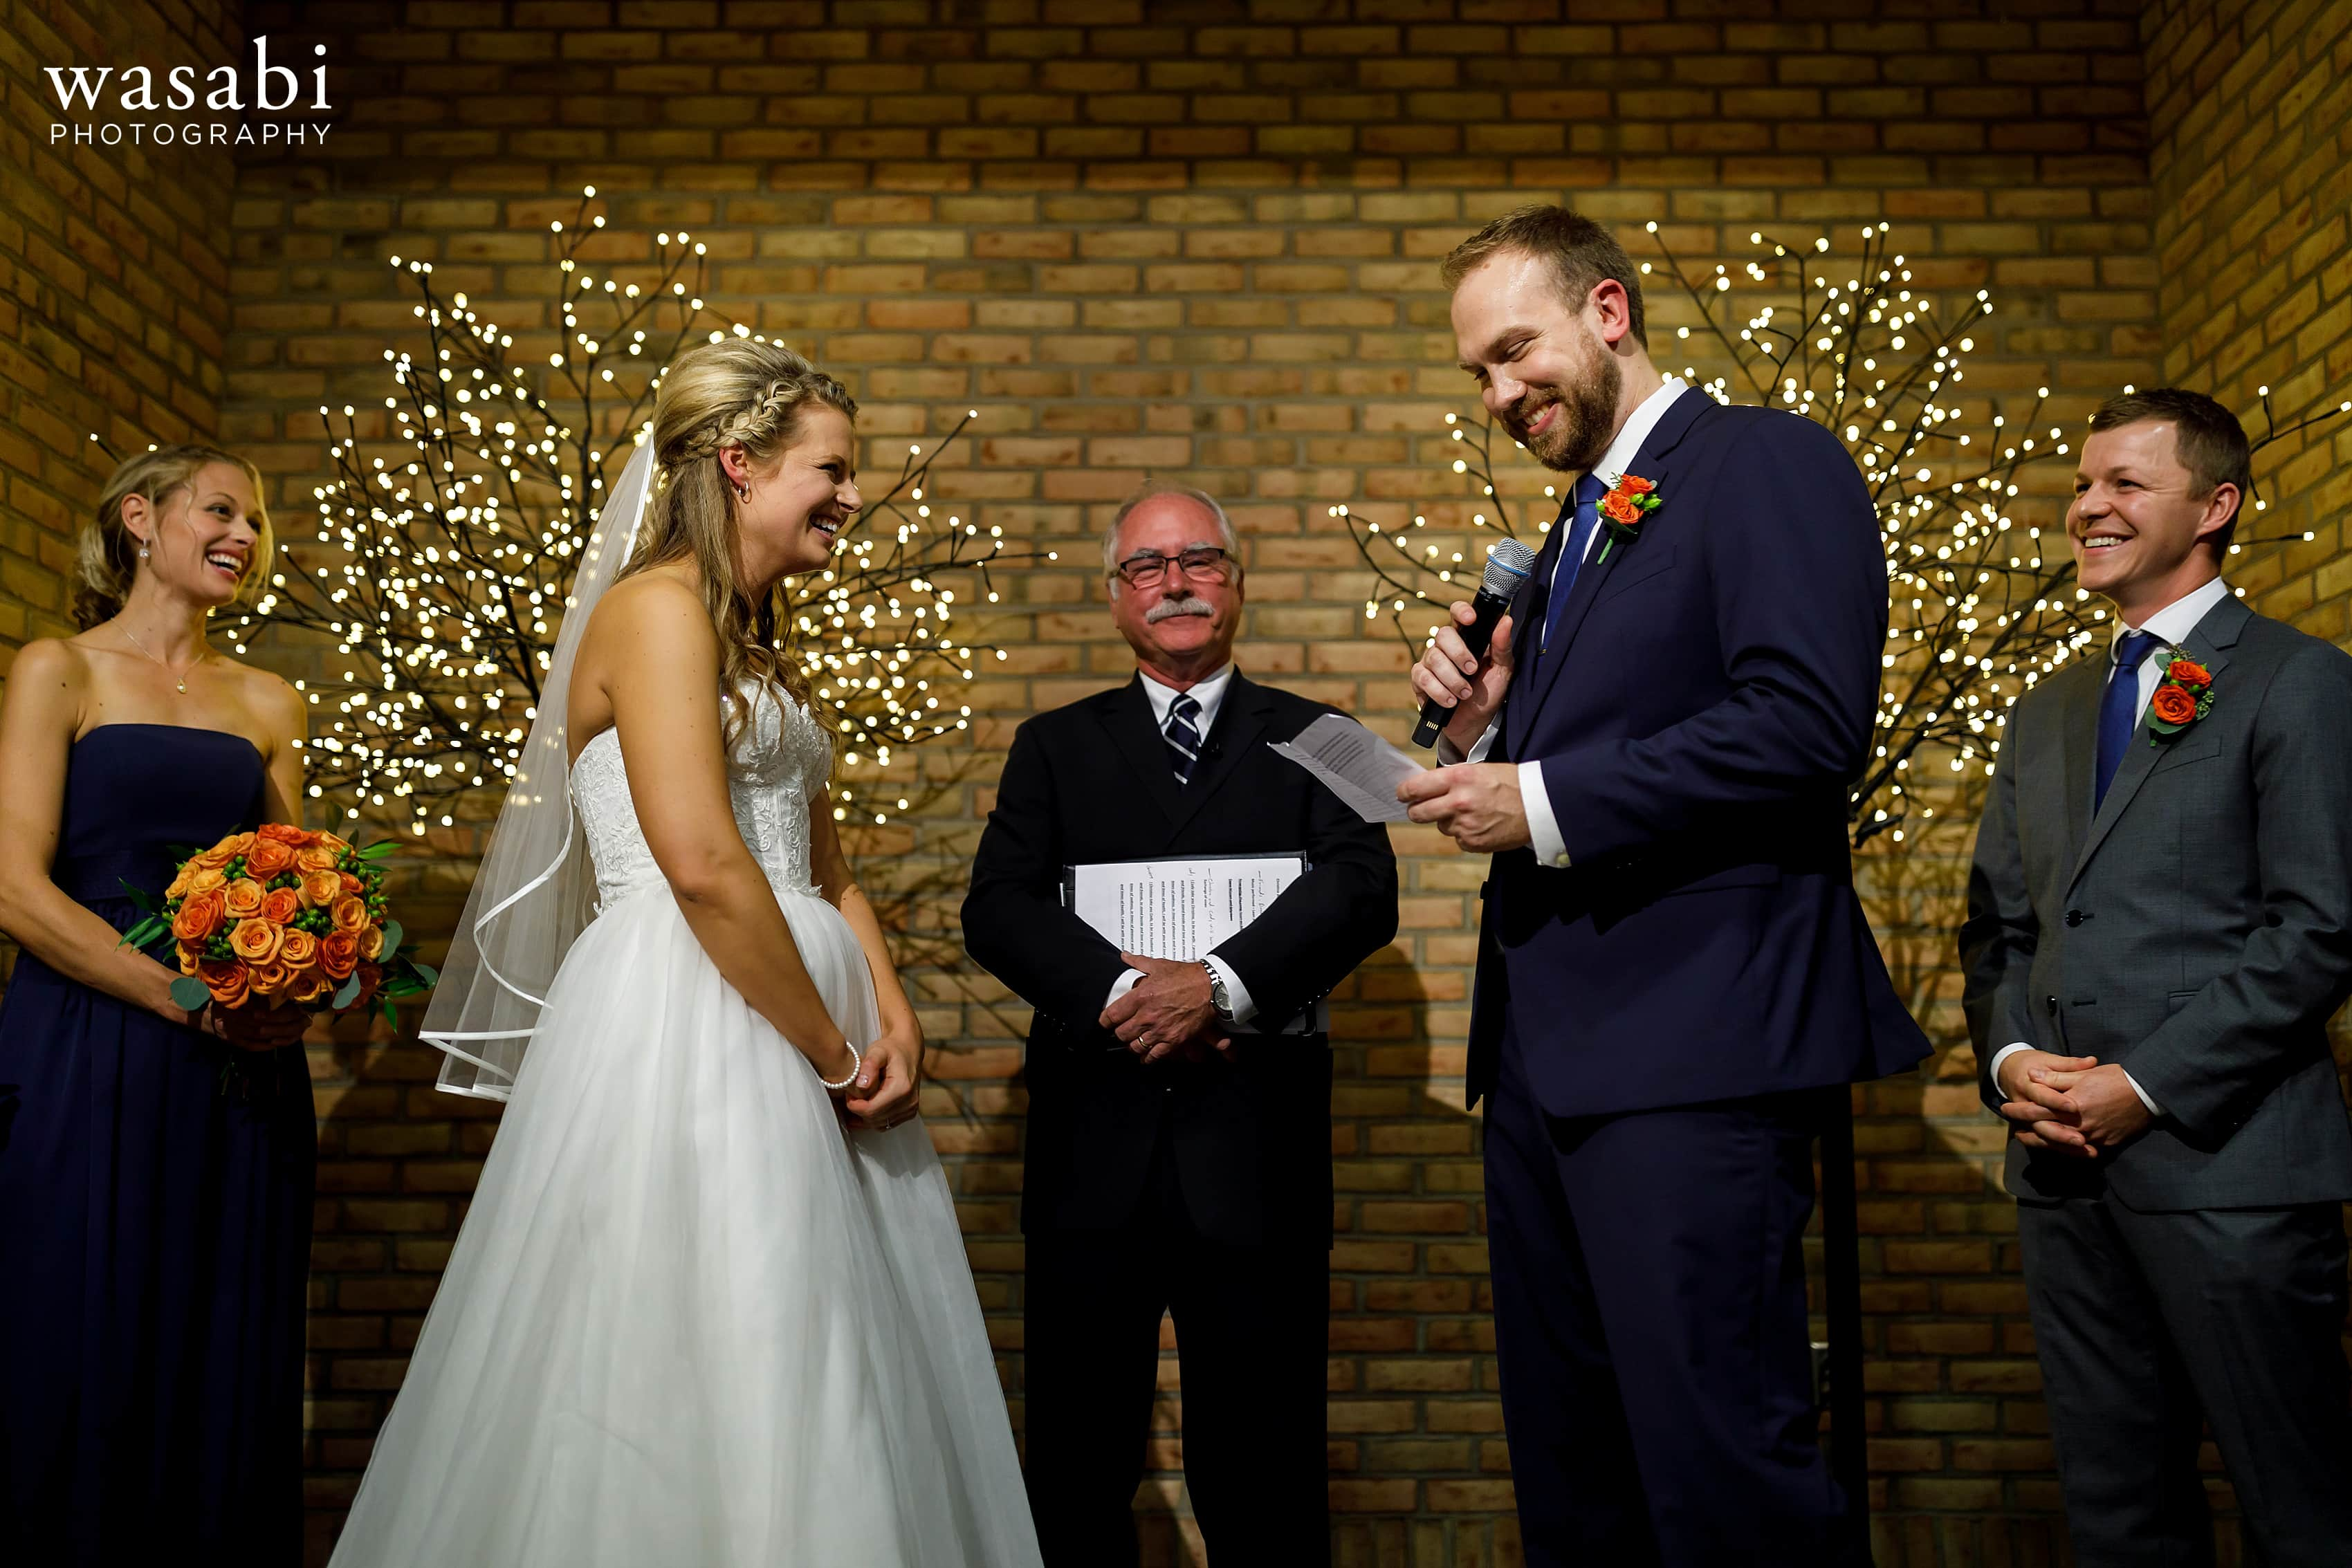 bride and groom exchange vows during their wedding at Eberhard Center in downtown Grand Rapids